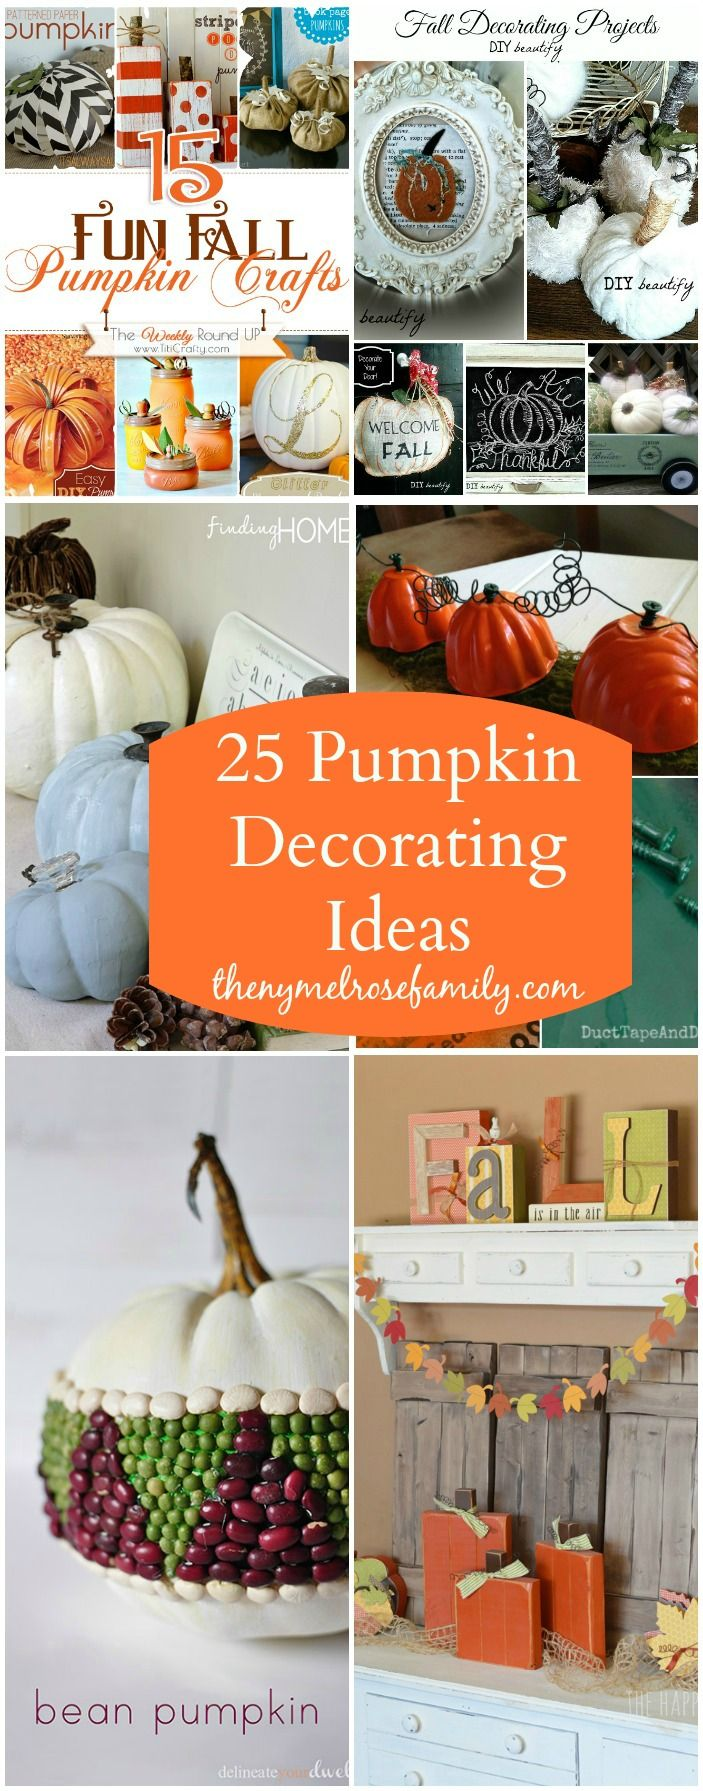 25 Pumpkin Decorating Ideas Great Fall Decorations